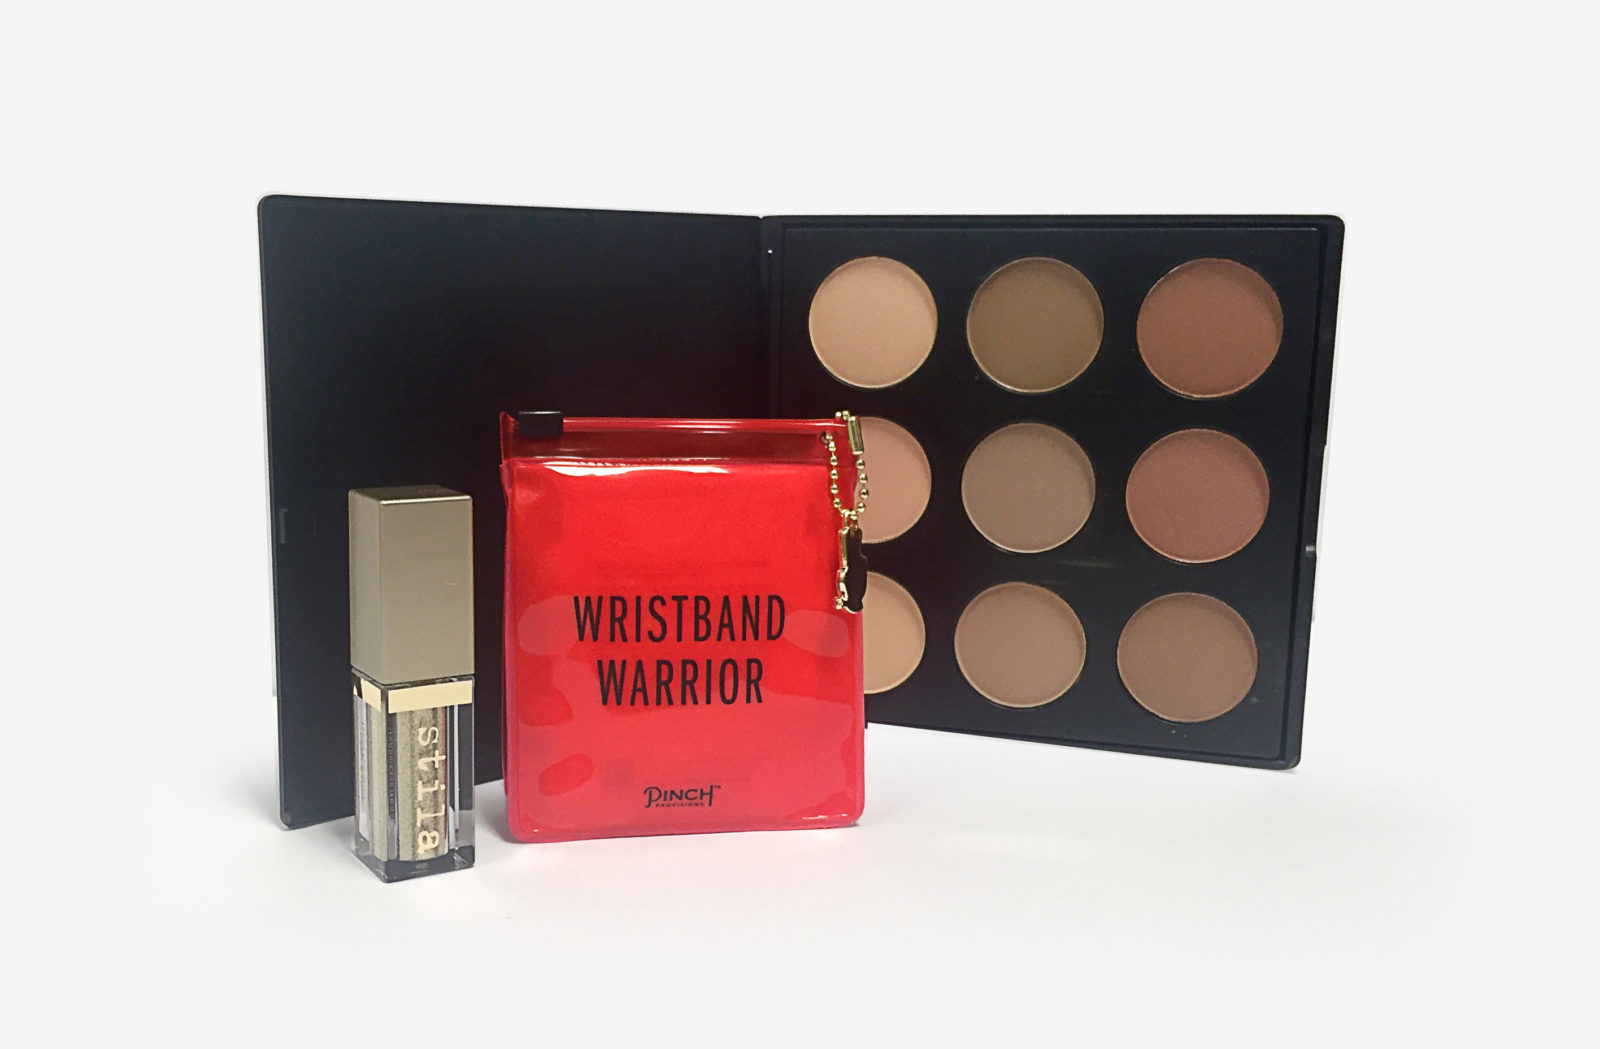 Runner up Wristband Warrior and Stila Eyeshadow in Gold